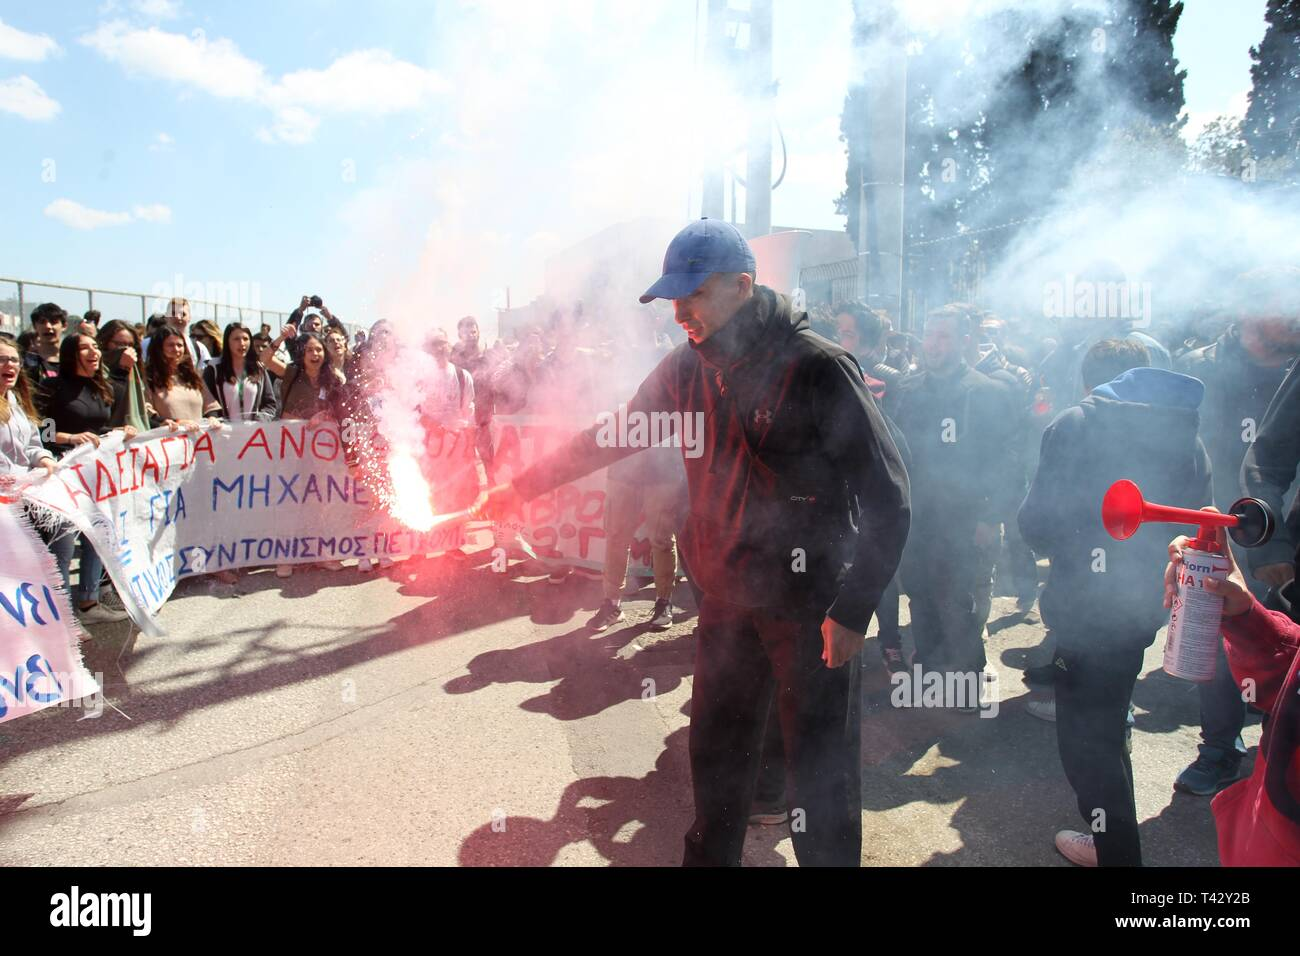 High-school students protest  against the new draft law on changes to admissions at examinations at university, outside the Ministry of Education. - Stock Image